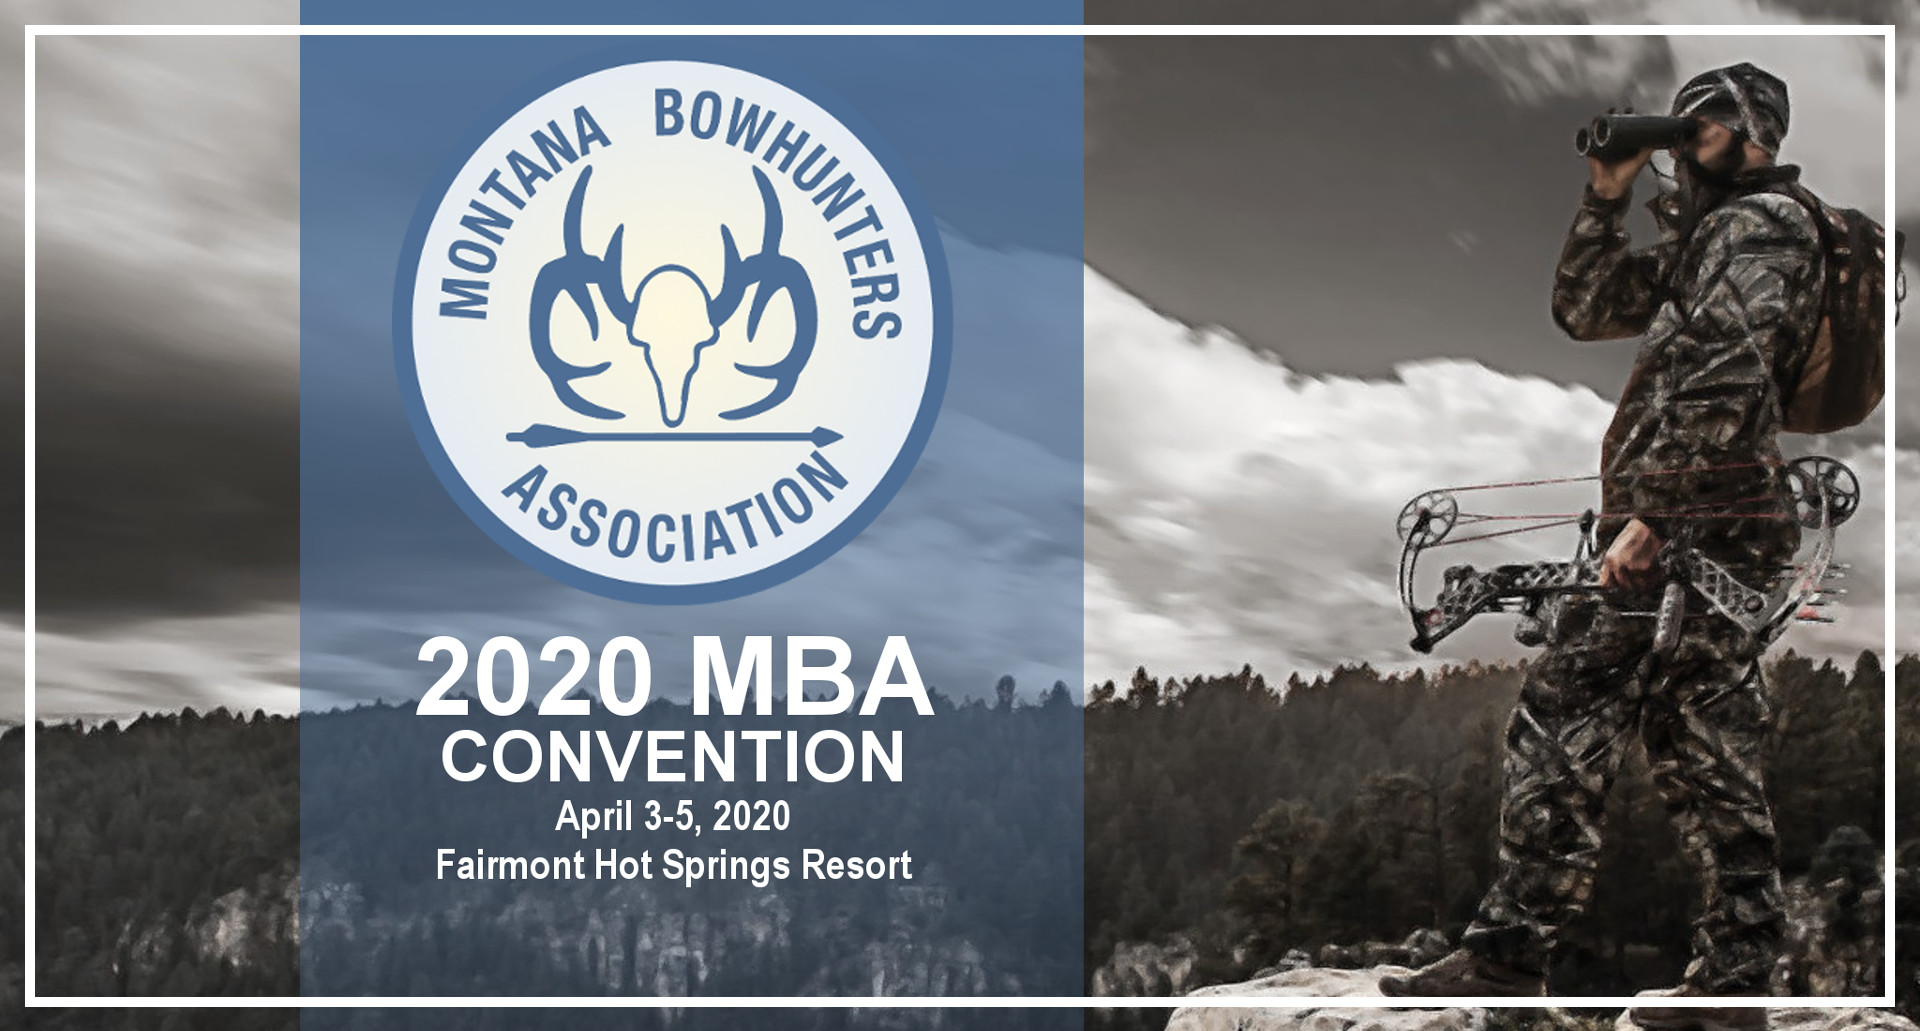 2020 MBA Convention | Fairmont Hot Springs Resort